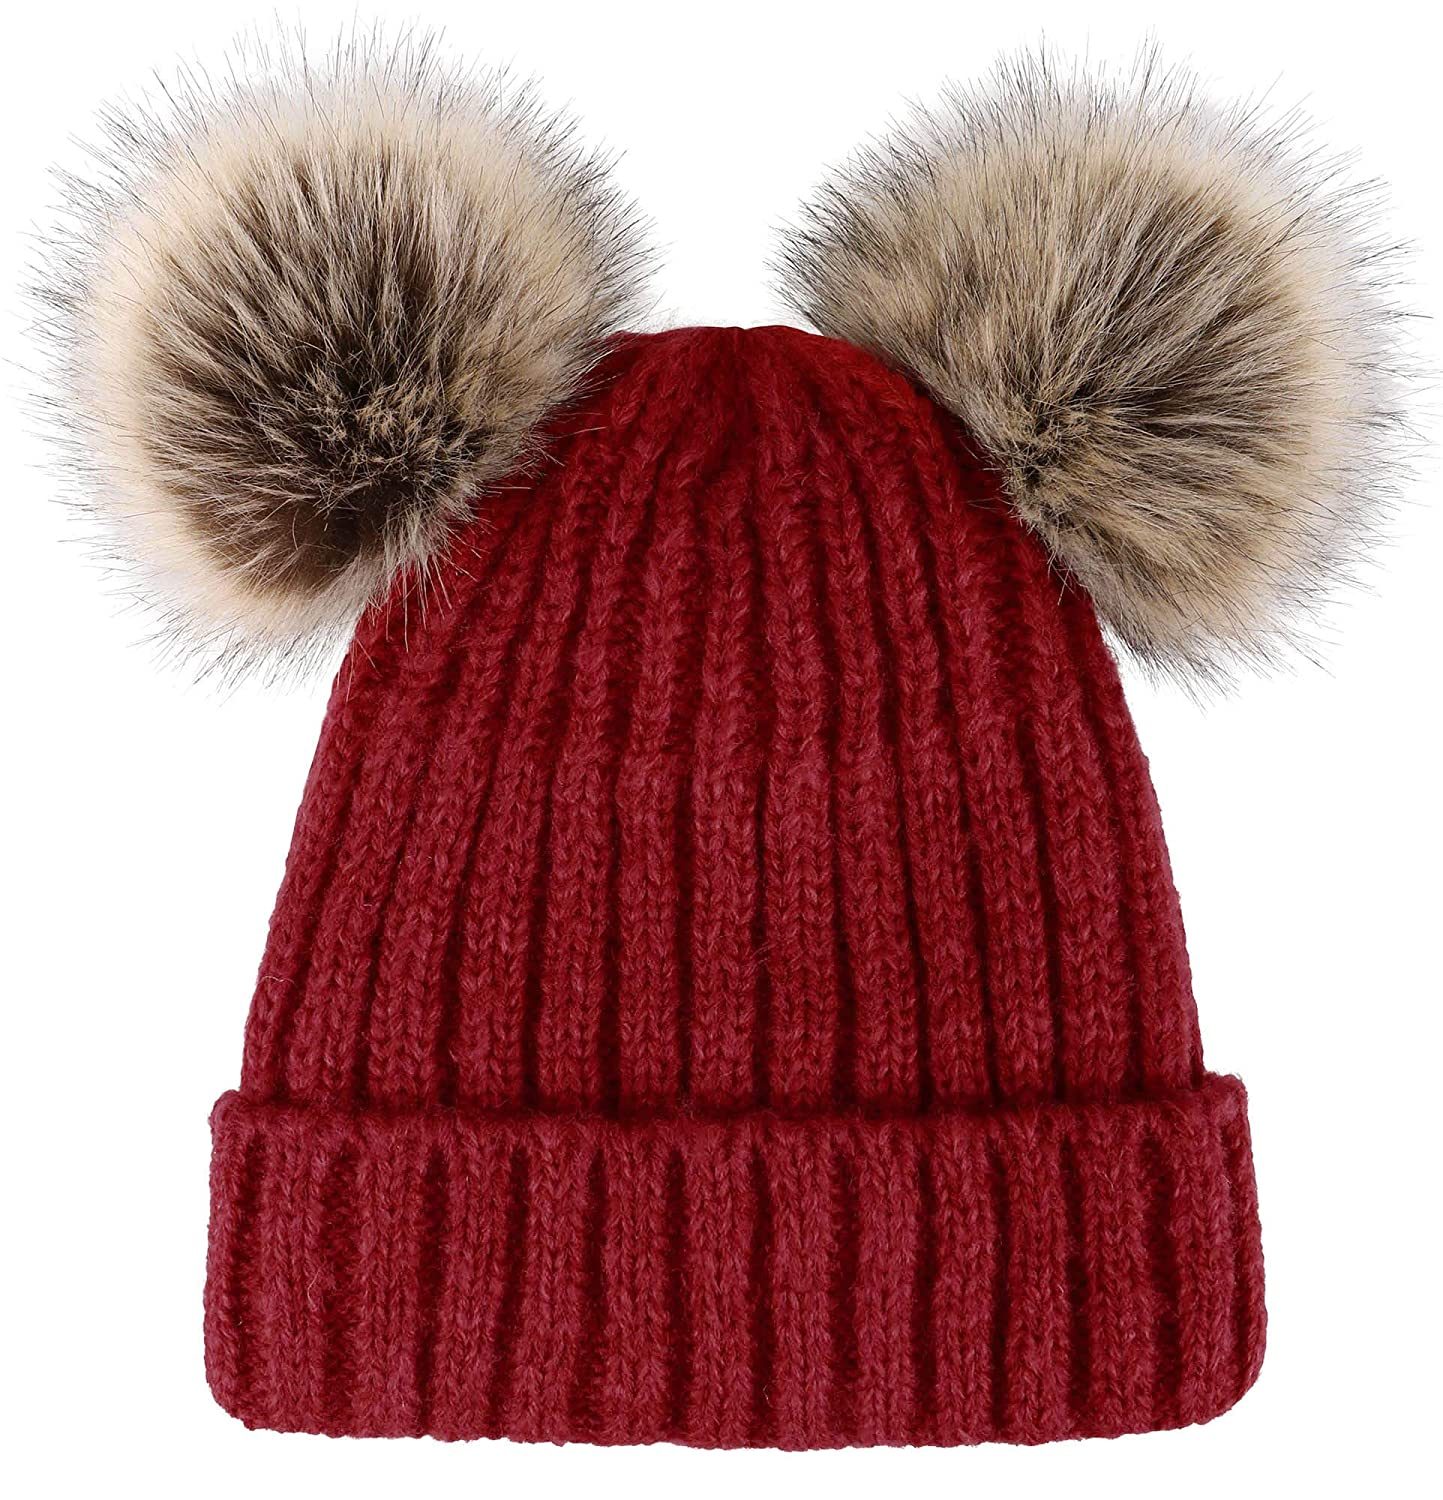 049949fda94 ARCTIC Paw Women Knit Beanie Cable Knit Beanie Hat Faux Fur Pompom Ears at  Amazon Women s Clothing store